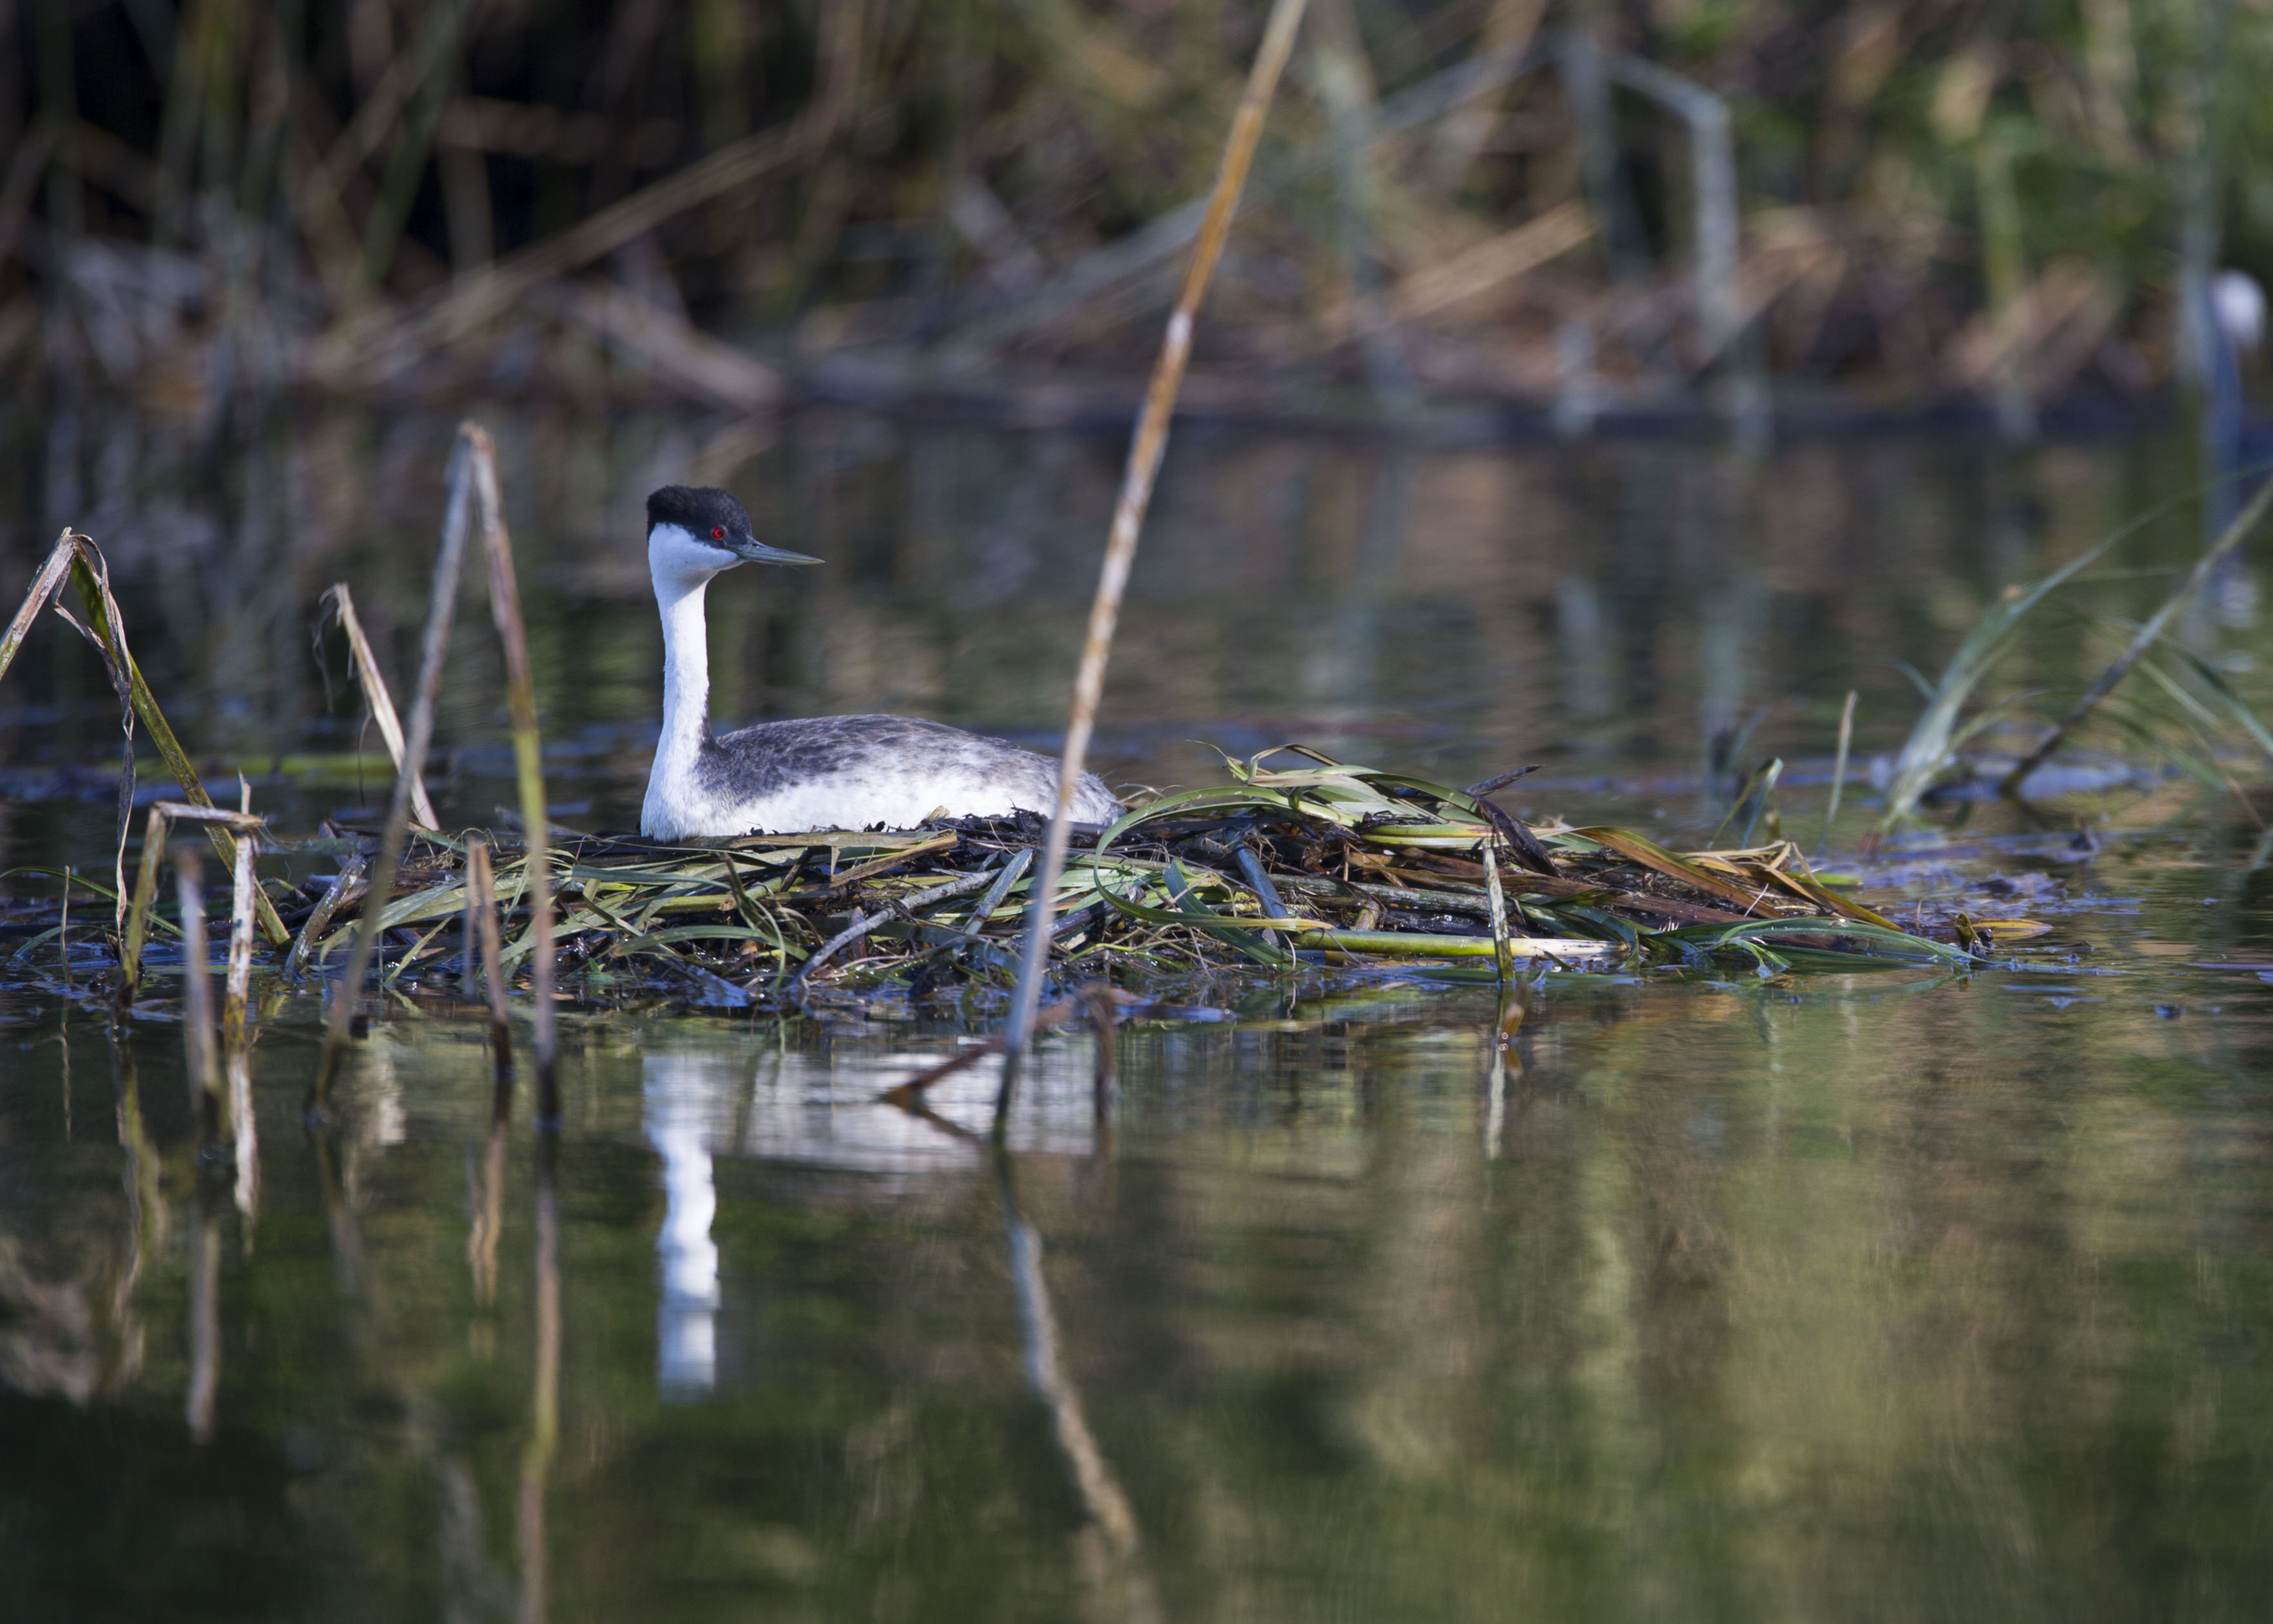 nesting Grebe                                         image courtesy of Cathy Buse